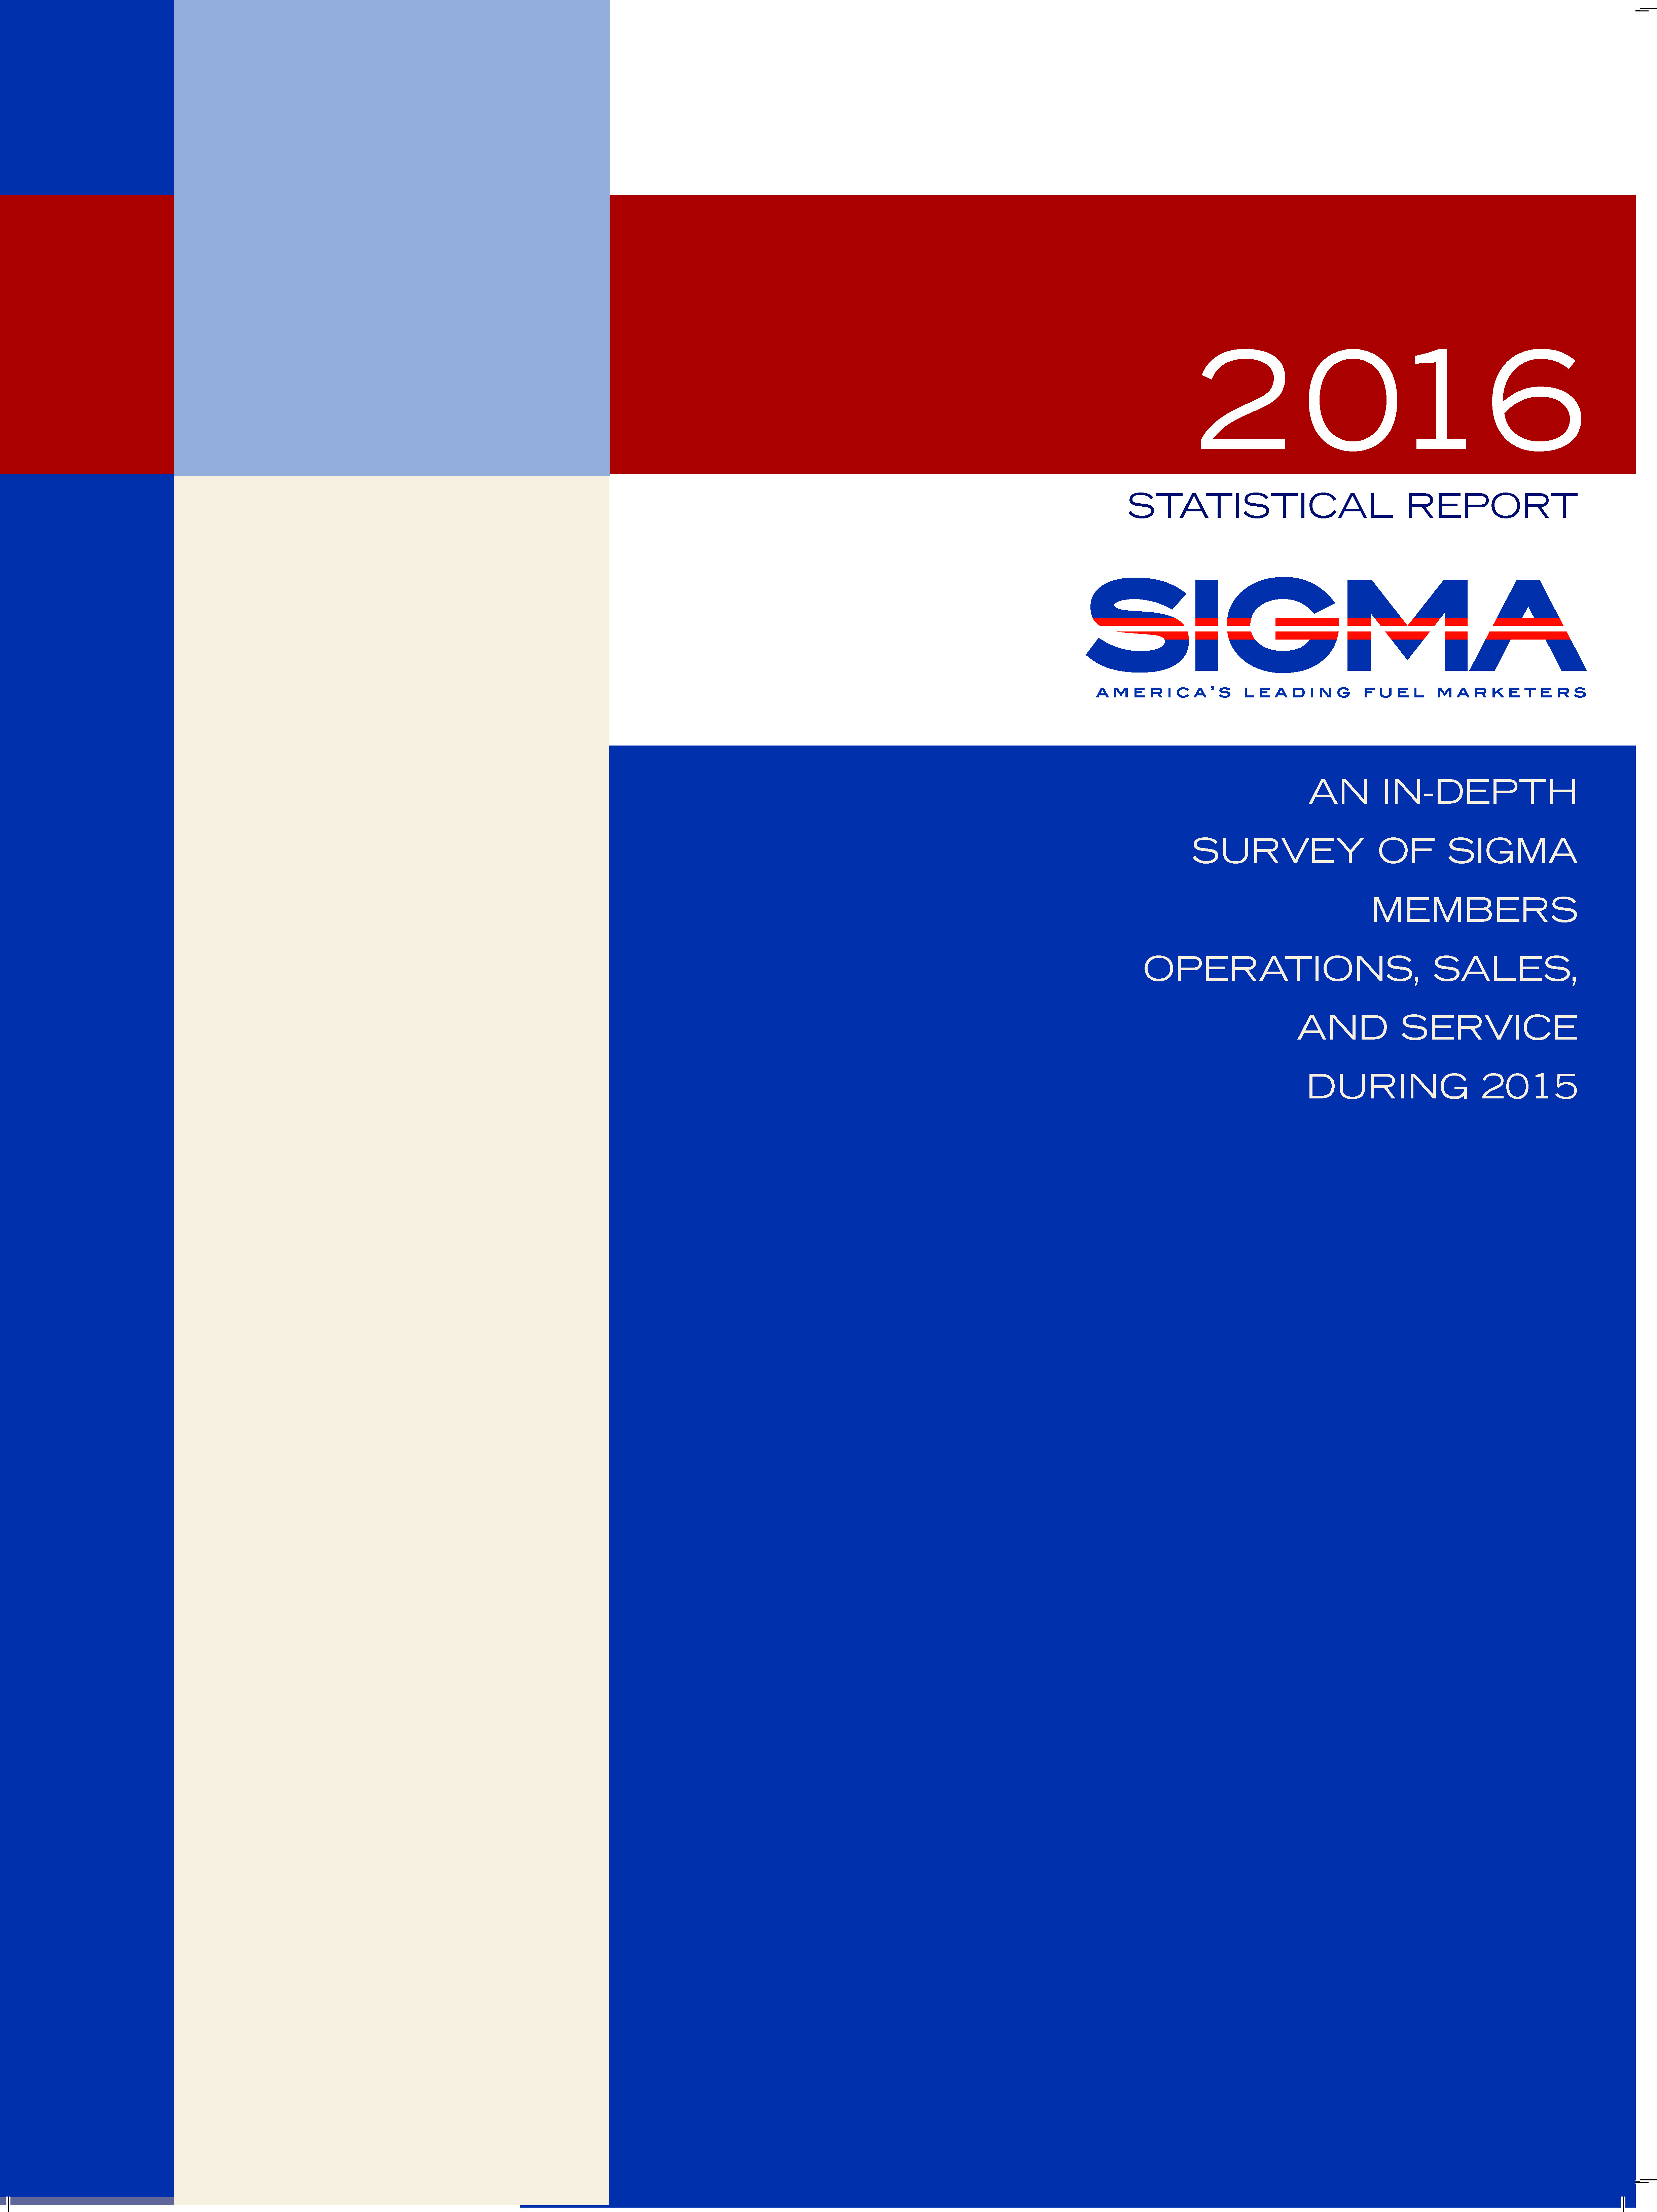 sigma statistical report click on the image below to open sigma s 2016 statistical report cover for website